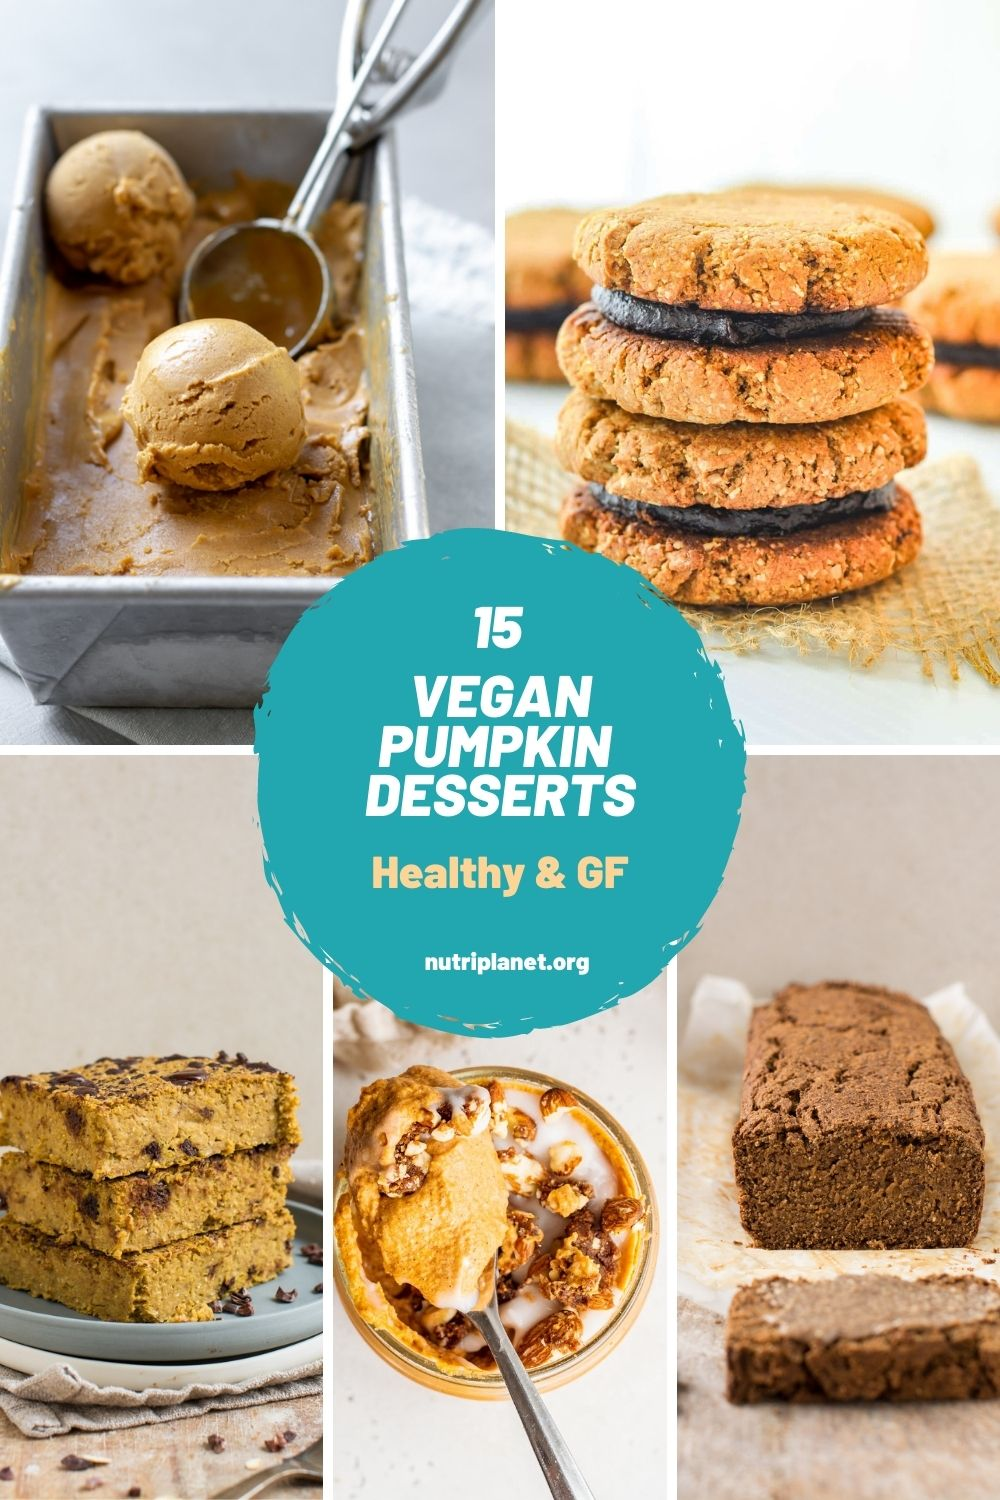 Learn how to make healthy vegan pumpkin dessert recipes. From pumpkin pie, blondies, brownies and ice cream to pumpkin mousse, cheesecake and cookies.